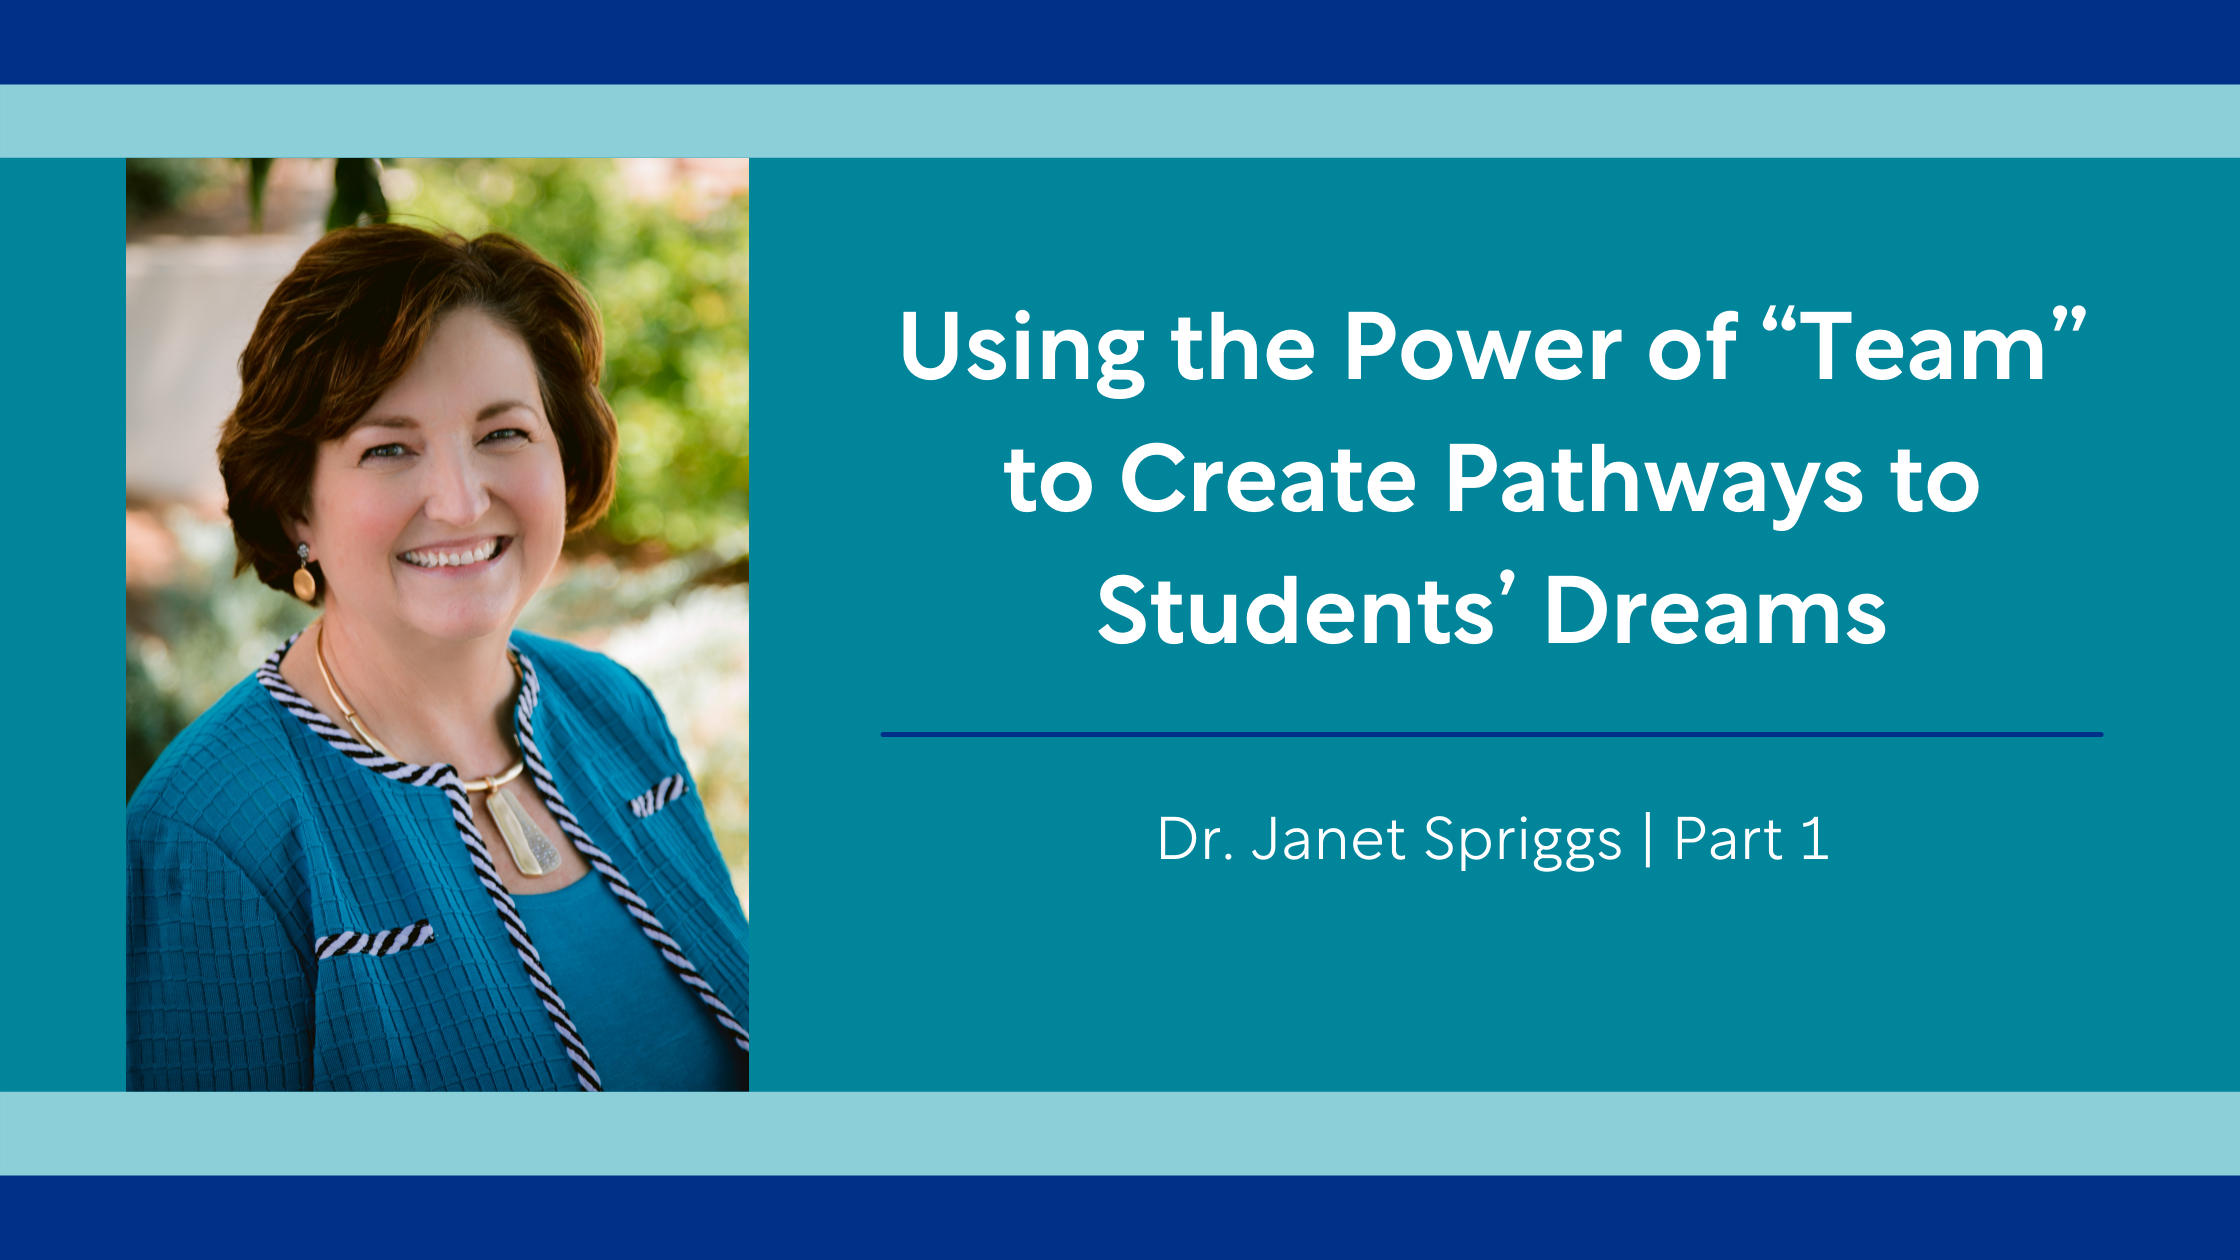 """Using the Power of """"Team"""" to Create Pathways to Students' Dreams"""